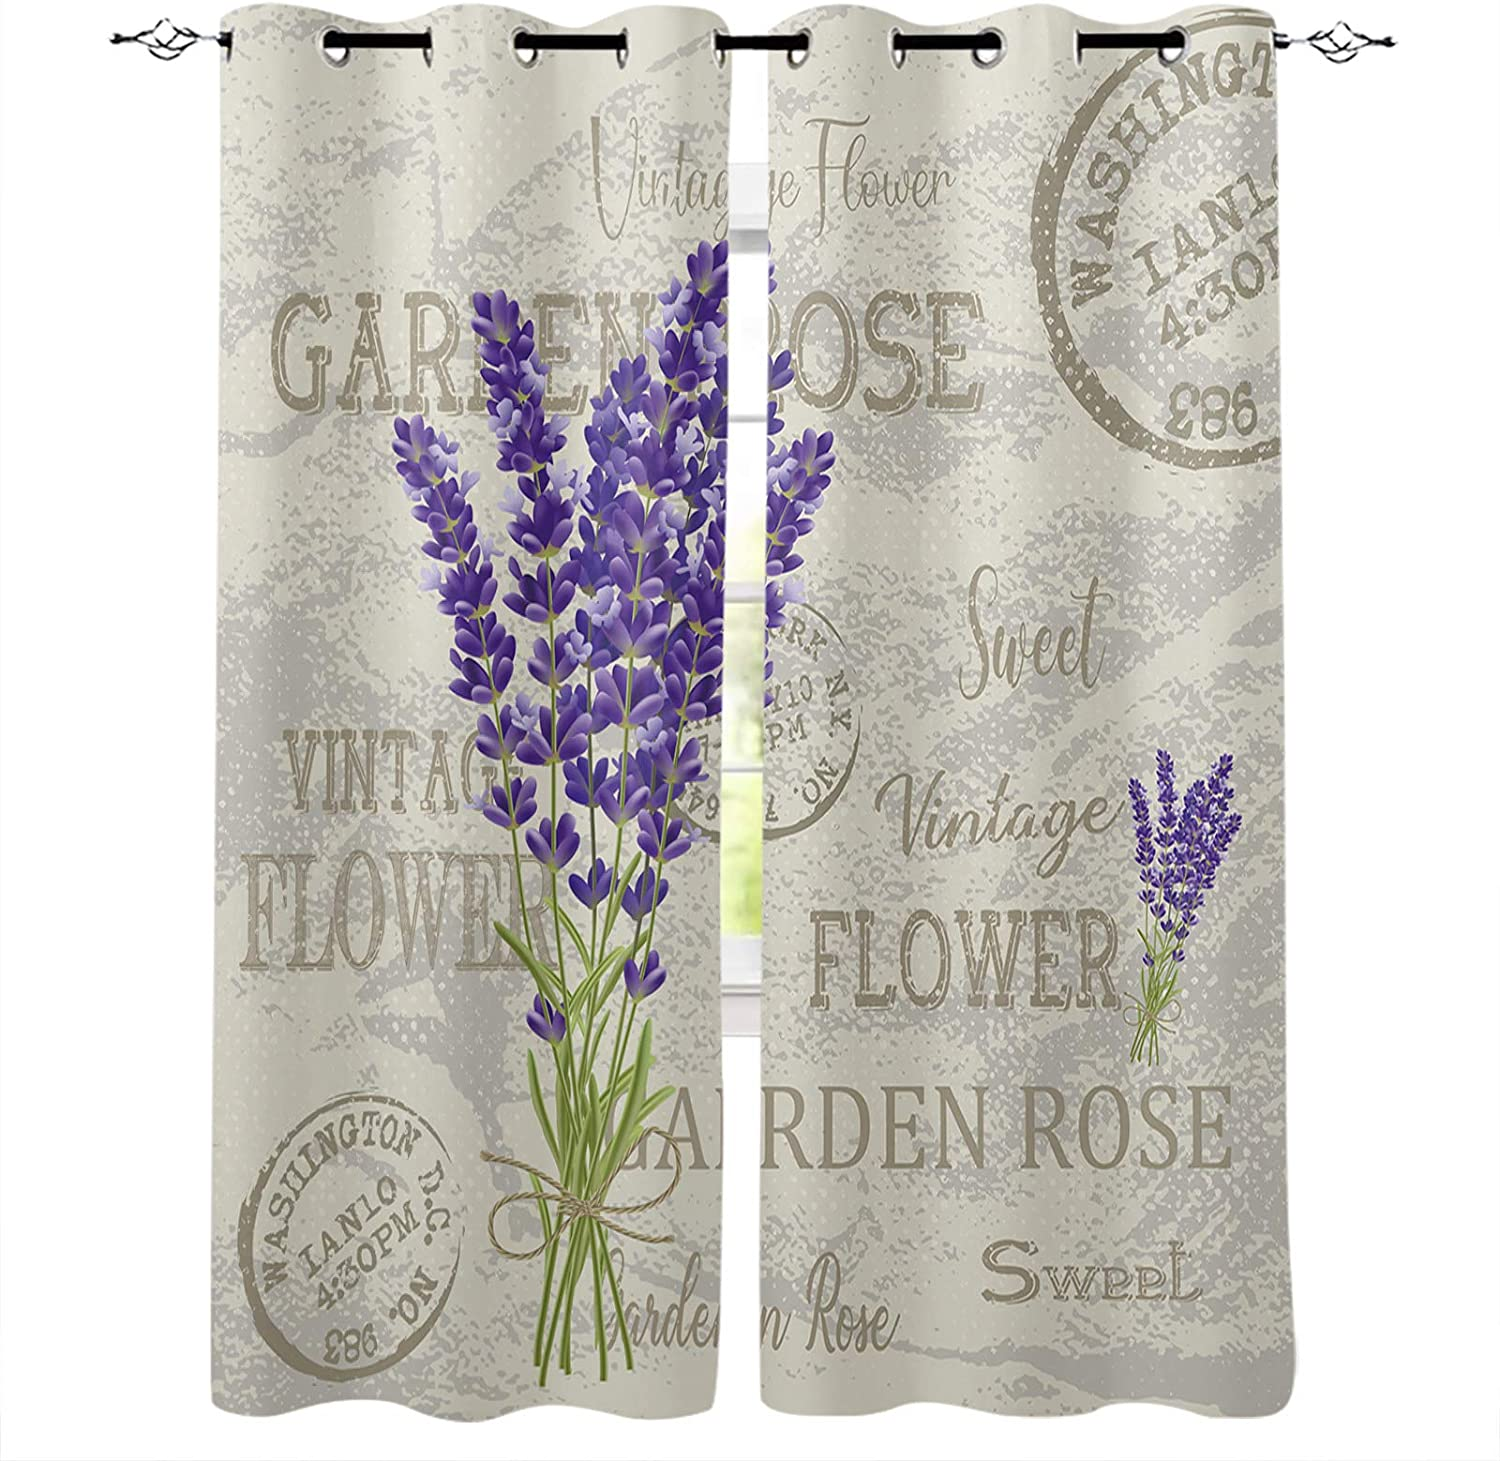 Blackout Curtains 96 Inch Long Pos Lavender Vintage El Paso Mall Bedroom Ranking TOP1 for